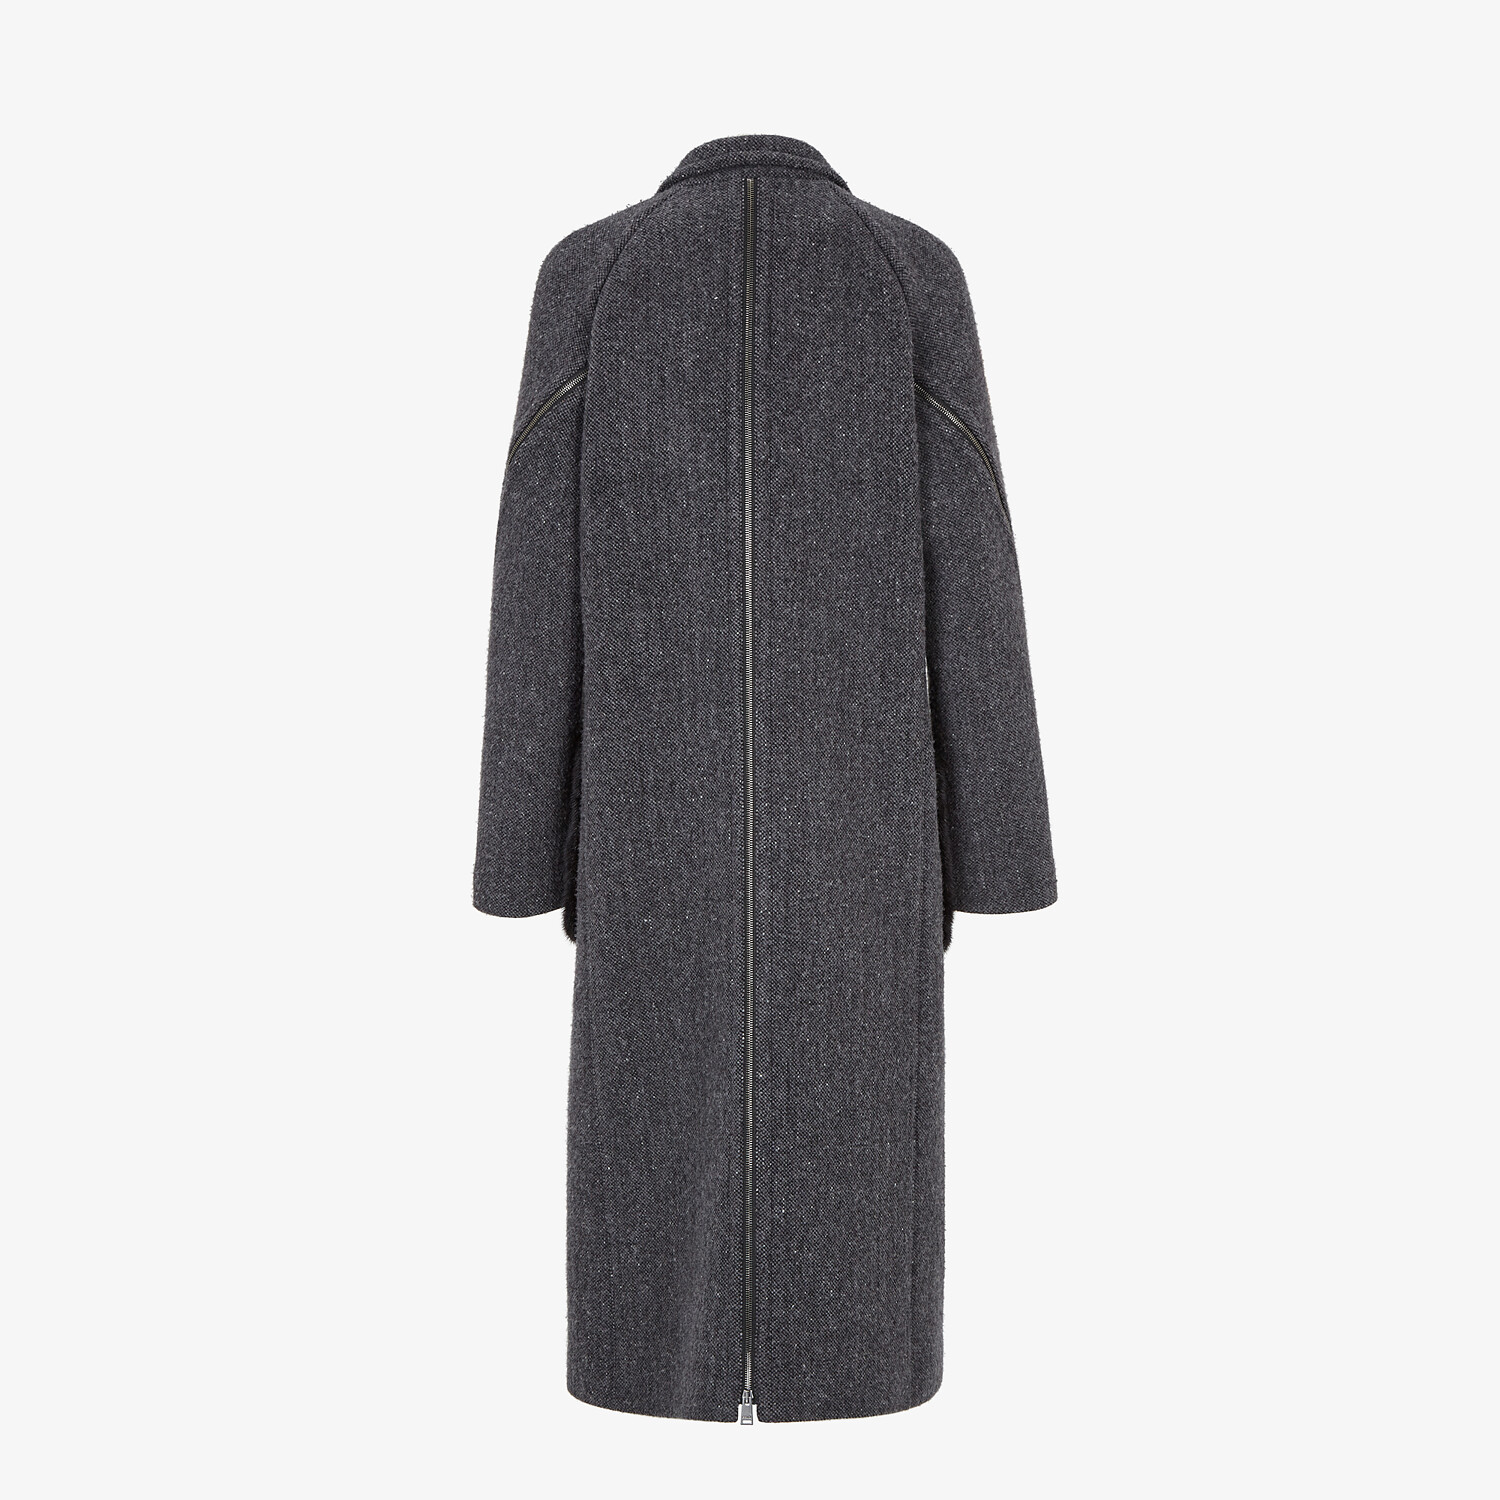 FENDI COAT - Gray melange double wool tweed coat - view 2 detail